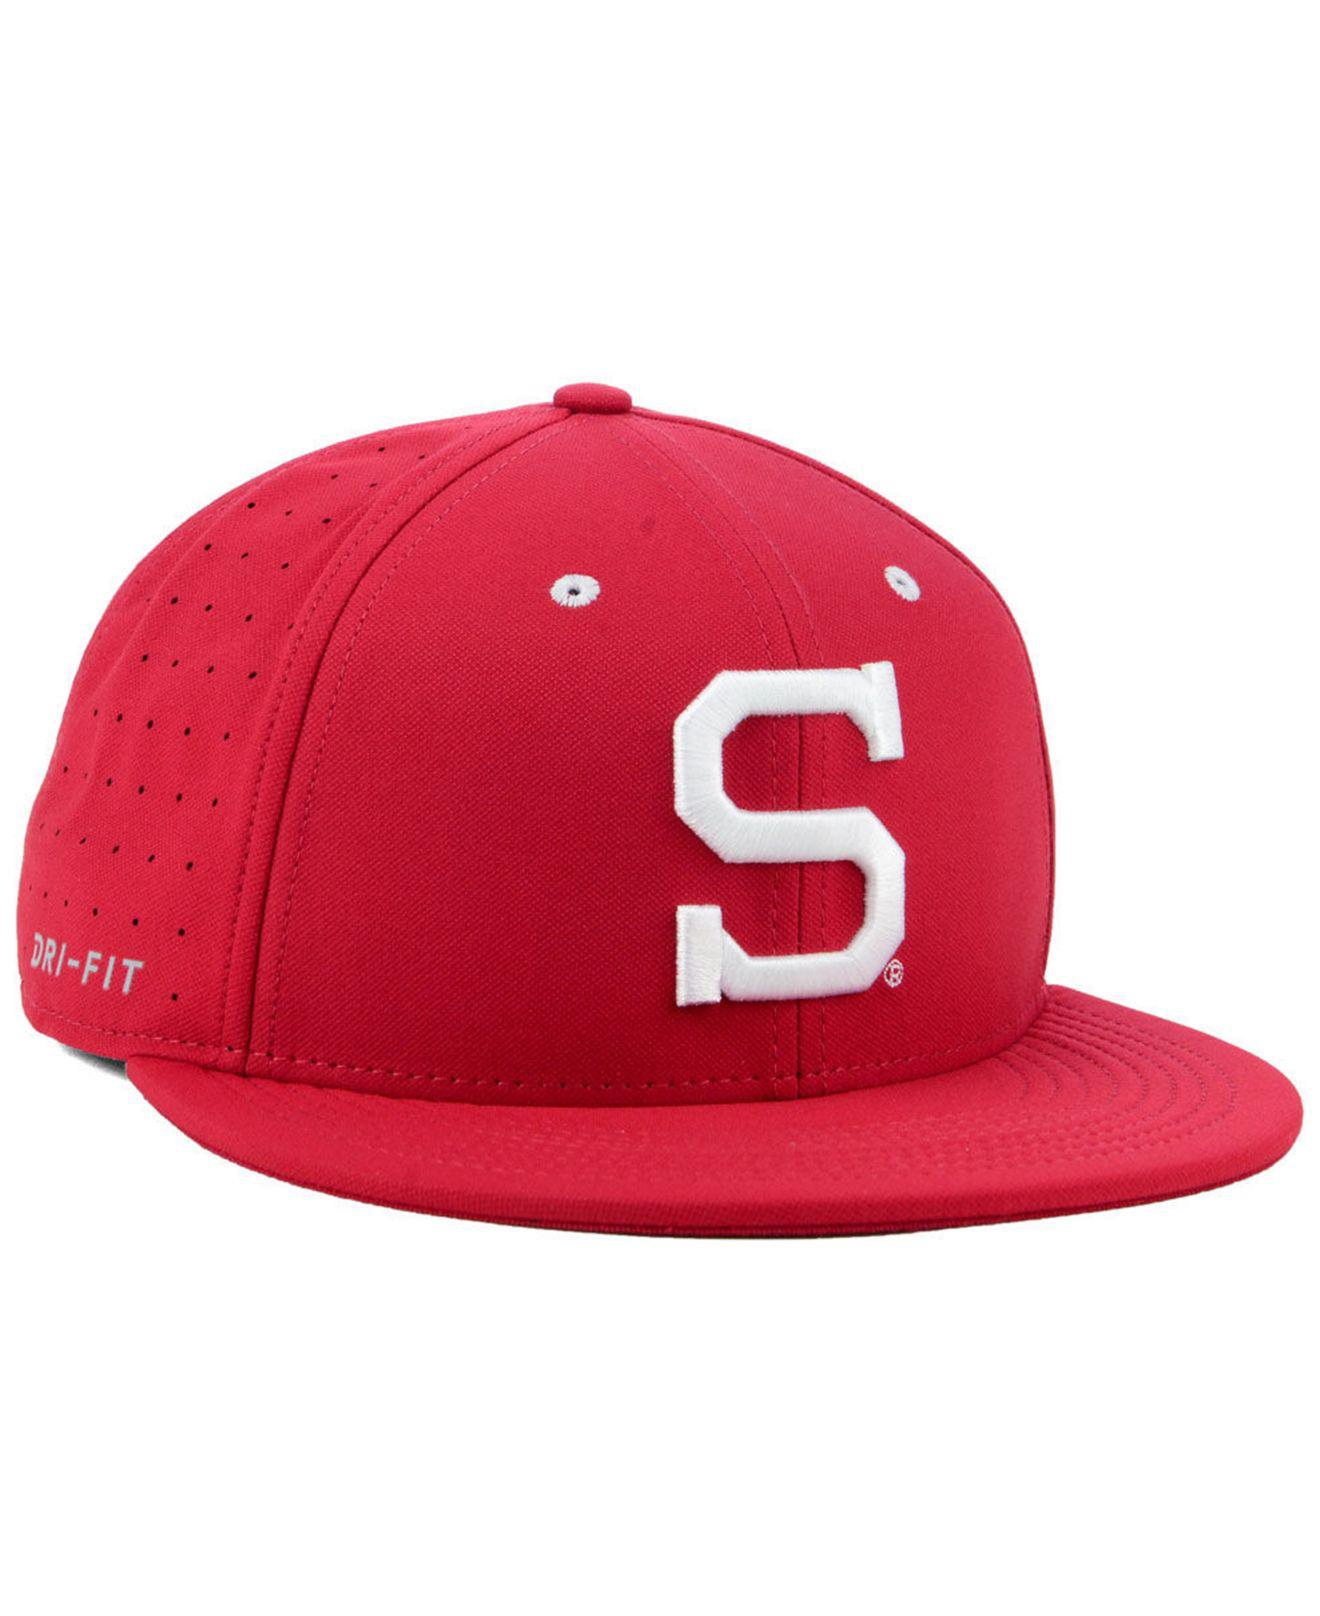 98aebd535a3 ... italy nike red stanford cardinal aerobill true fitted baseball cap for men  lyst. view fullscreen